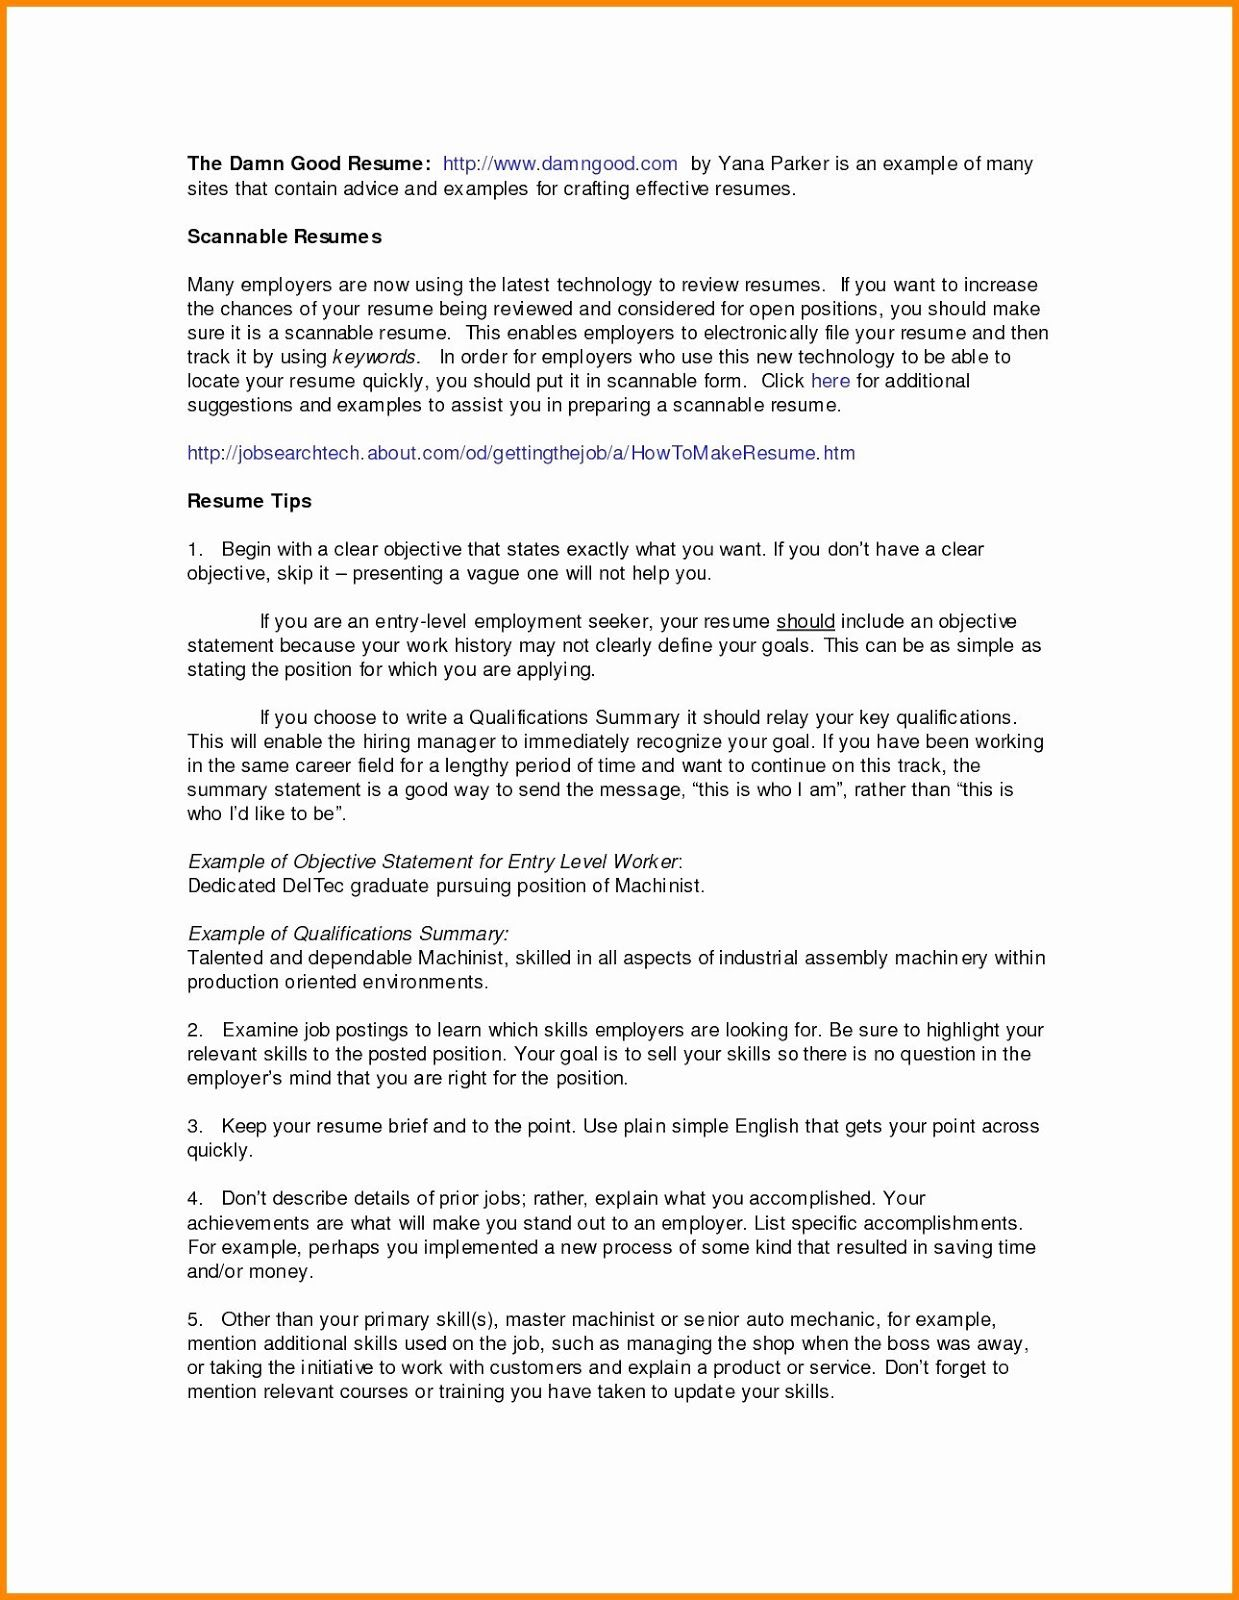 39+ Restaurant manager resume objective examples ideas in 2021